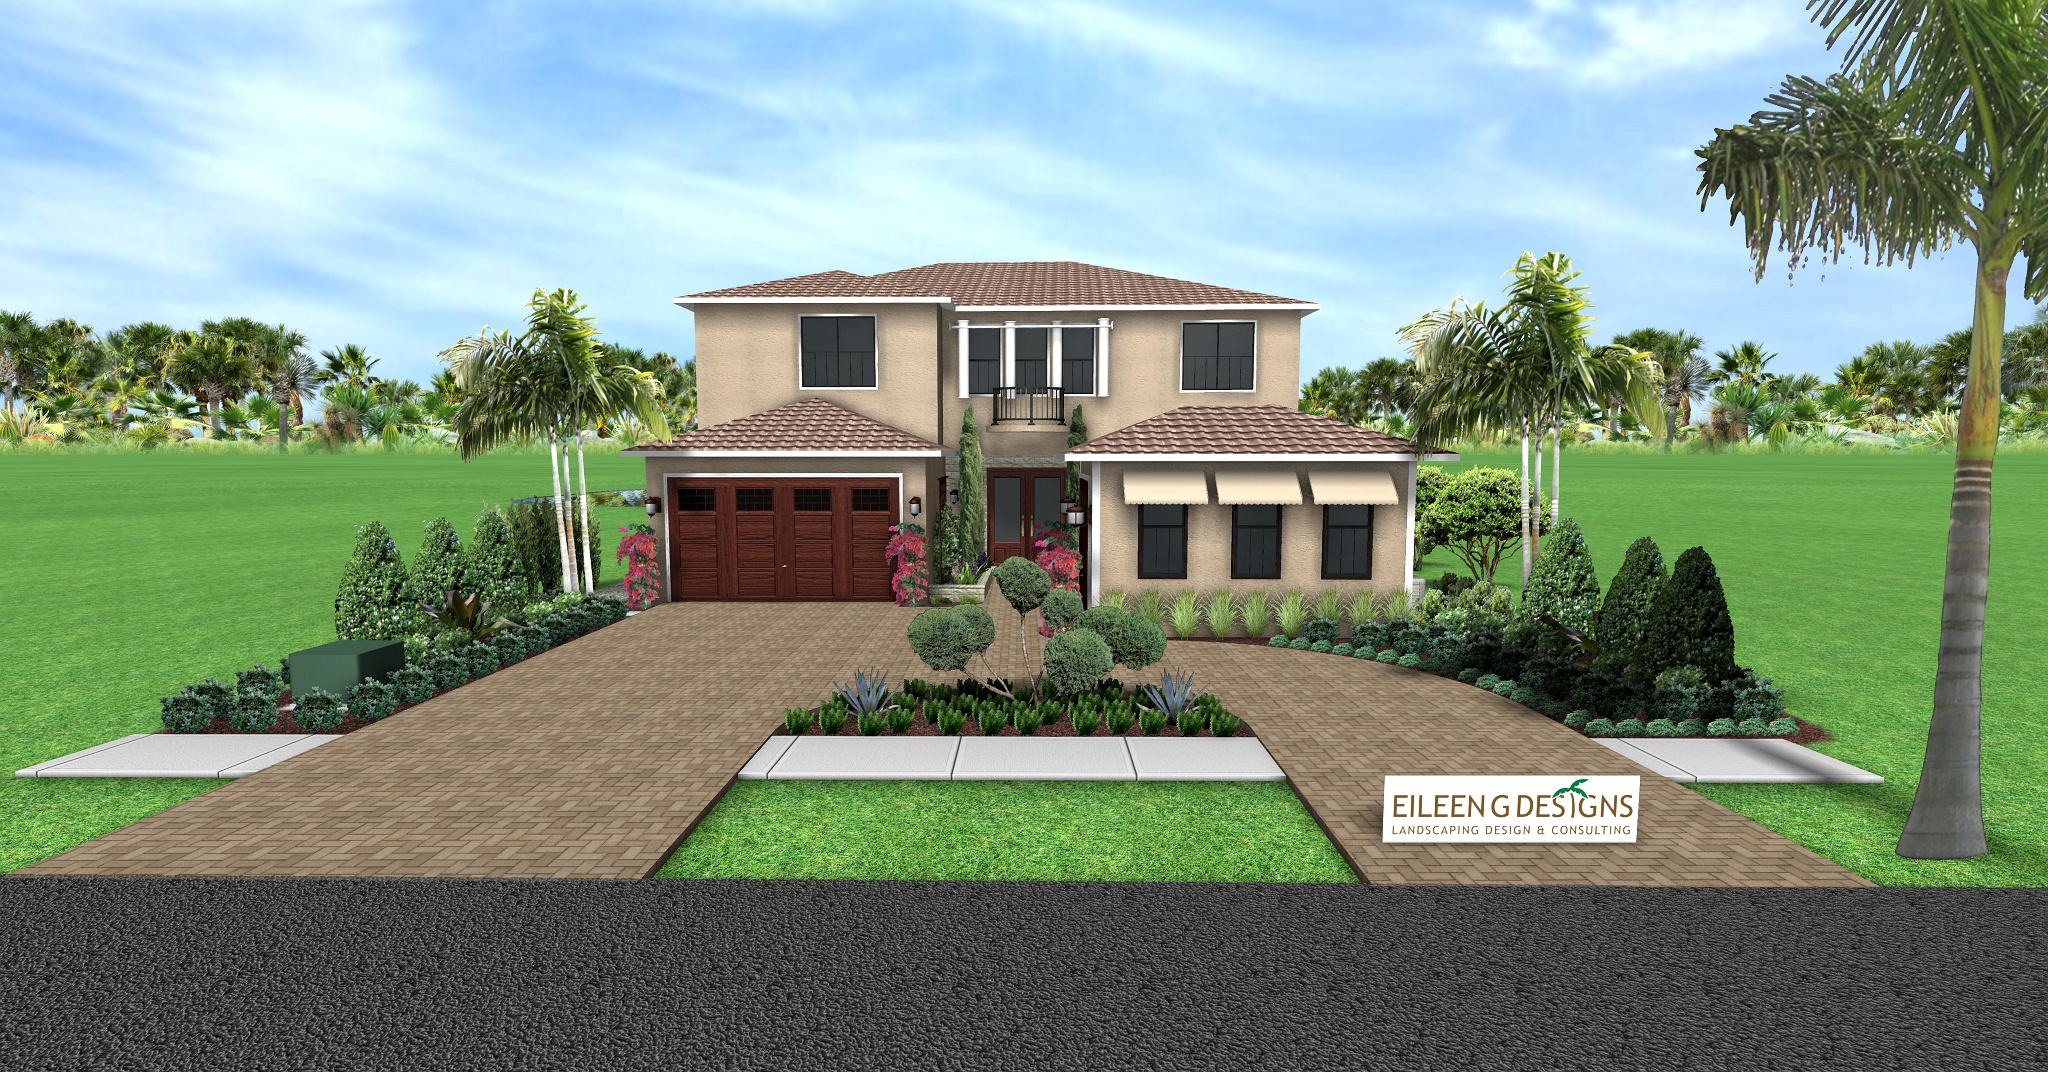 Mediterranean Themed Landscape Design for New Construction in Boca Raton, South Florida